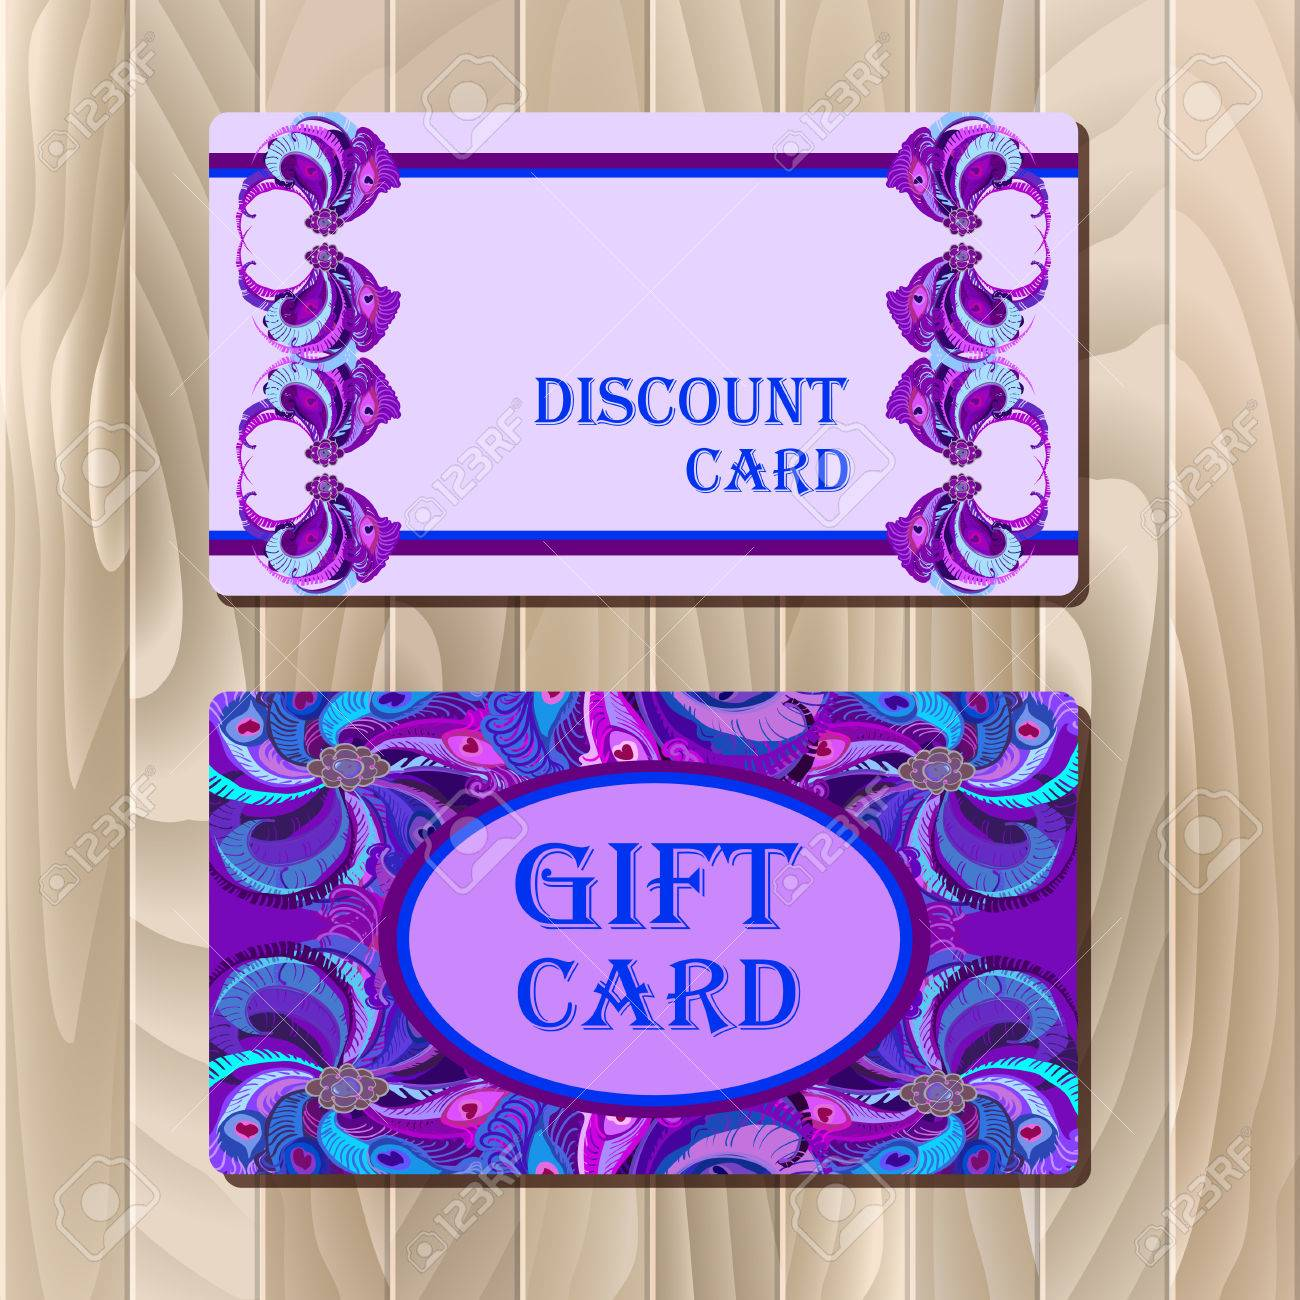 Discount card big sale gift certificate or voucher coupon discount card big sale gift certificate or voucher coupon templatewith peacock feathers yadclub Images